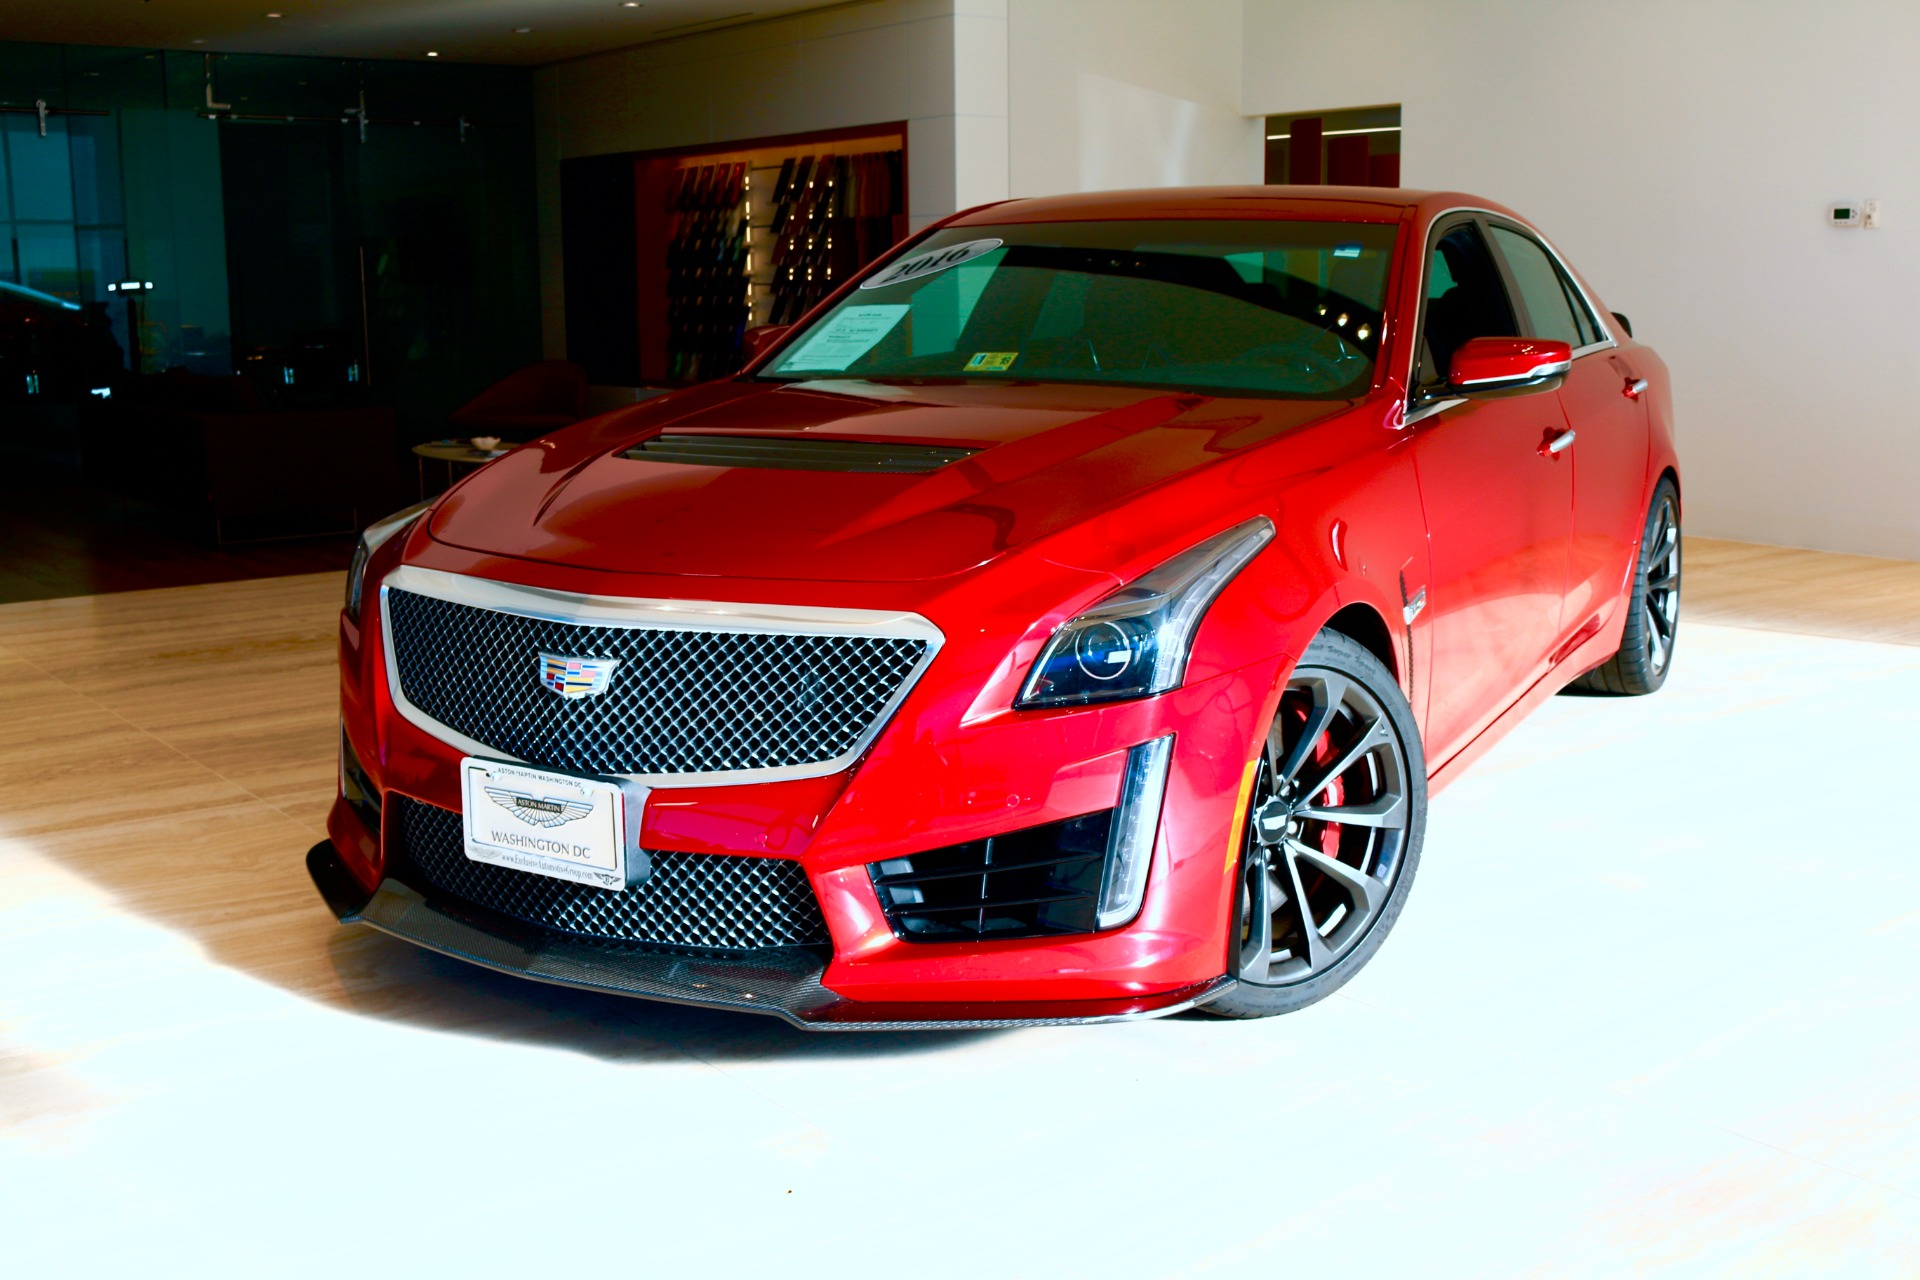 2016 cadillac cts v stock 6n8057450a for sale near vienna va va cadillac dealer for sale in. Black Bedroom Furniture Sets. Home Design Ideas